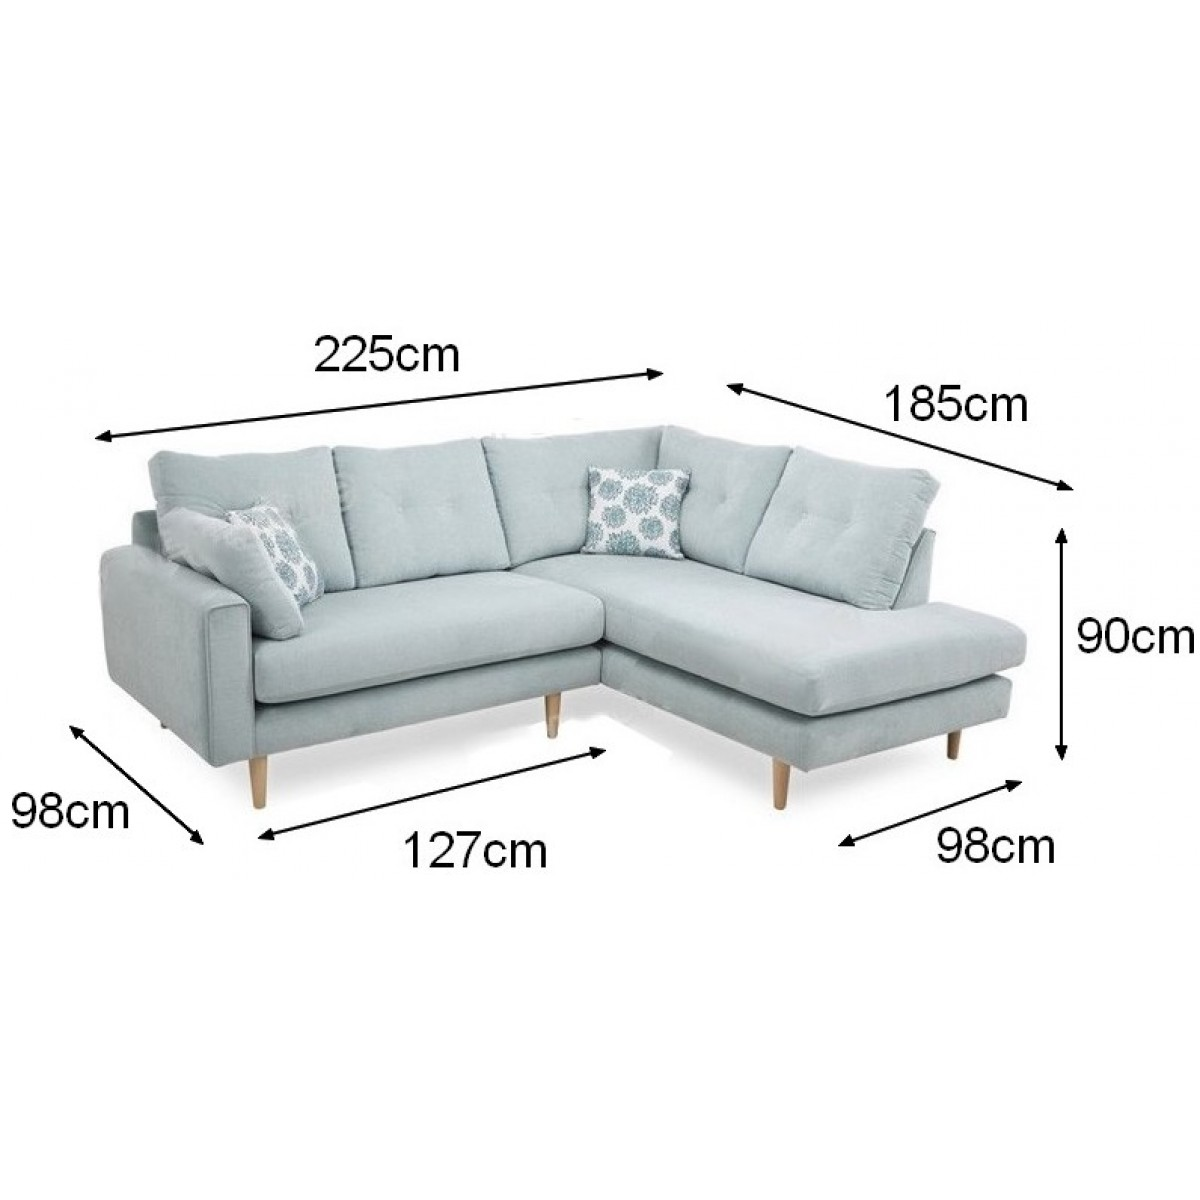 Dimension Canapé D Angle Canape Angle Dimension Royal Sofa Idée De Canapé Et Meuble Maison